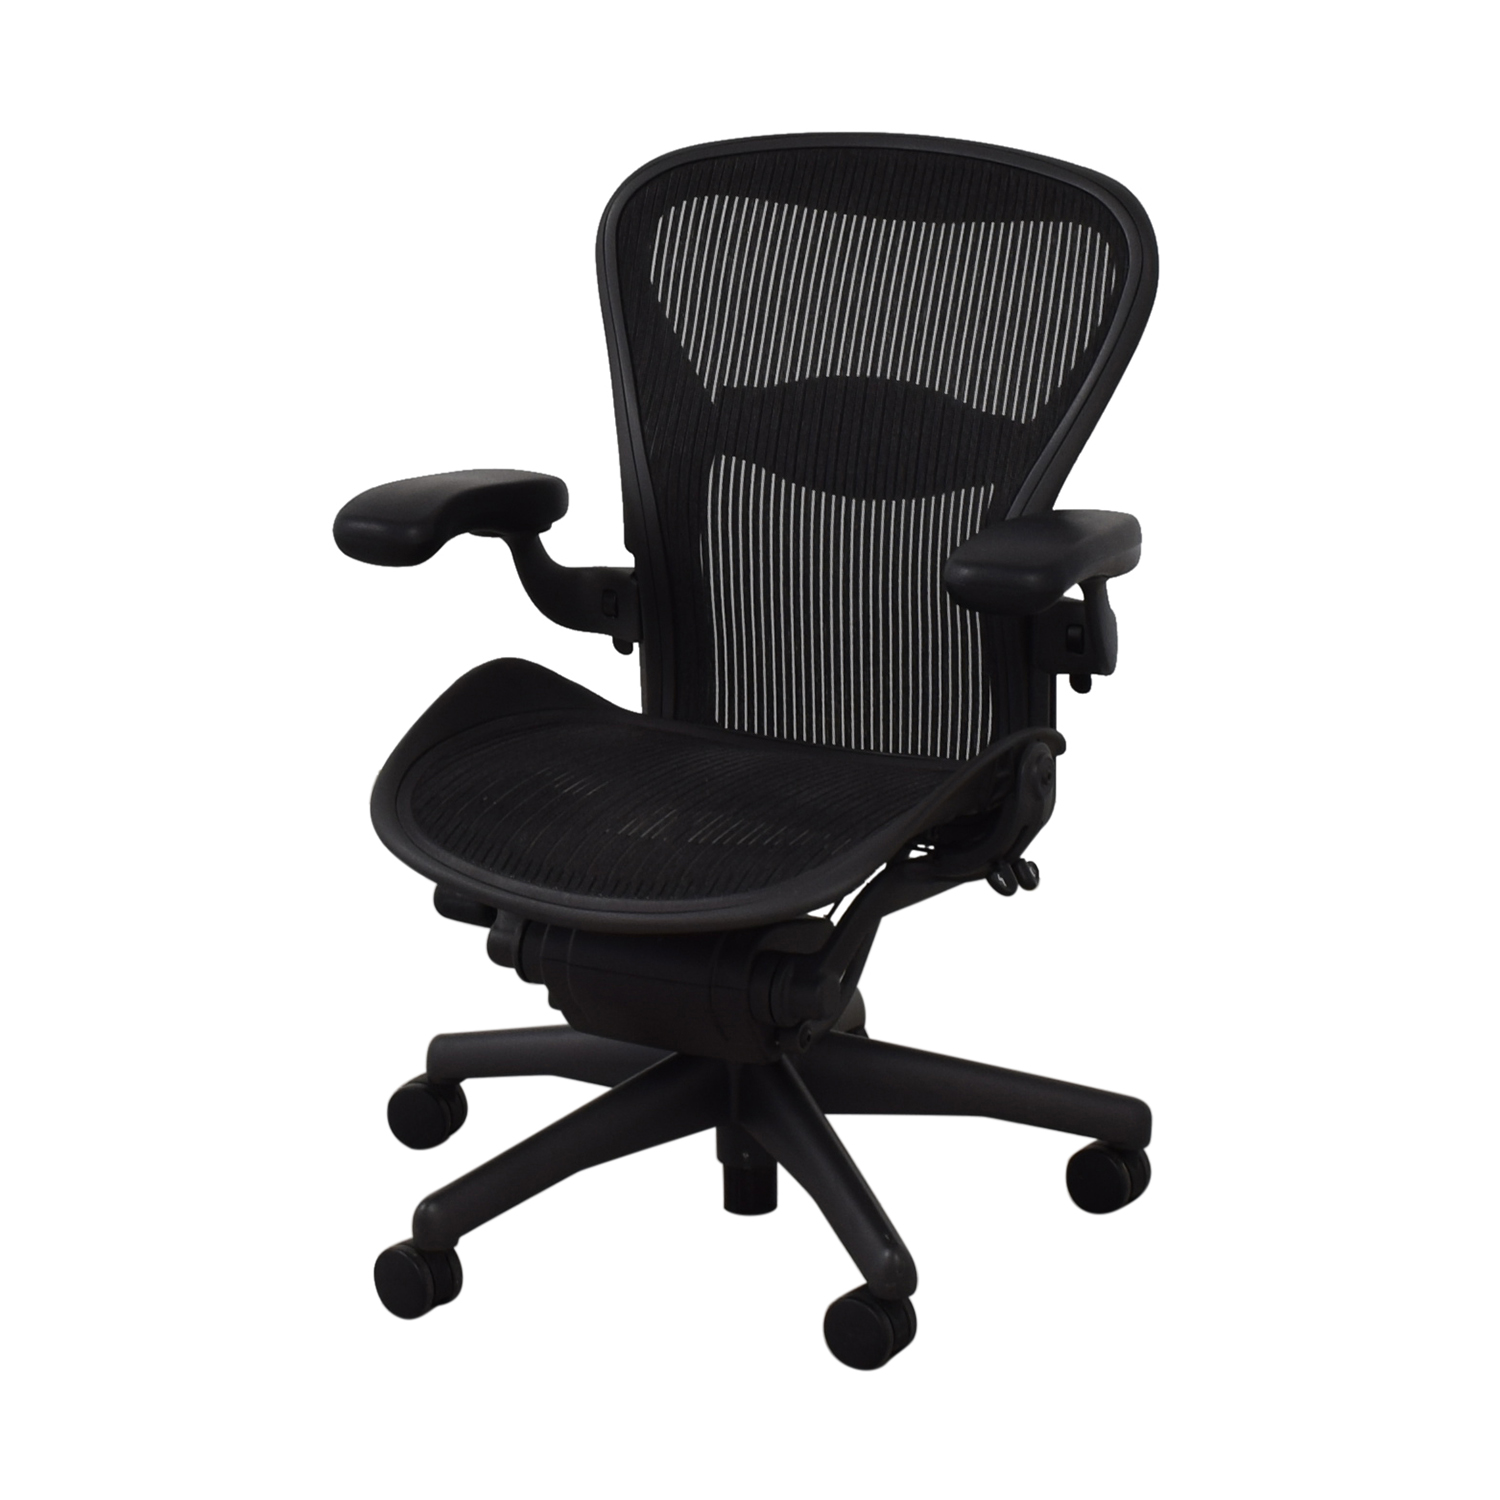 Prime 58 Off Herman Miller Herman Miller Aeron Chair Size B Chairs Ocoug Best Dining Table And Chair Ideas Images Ocougorg